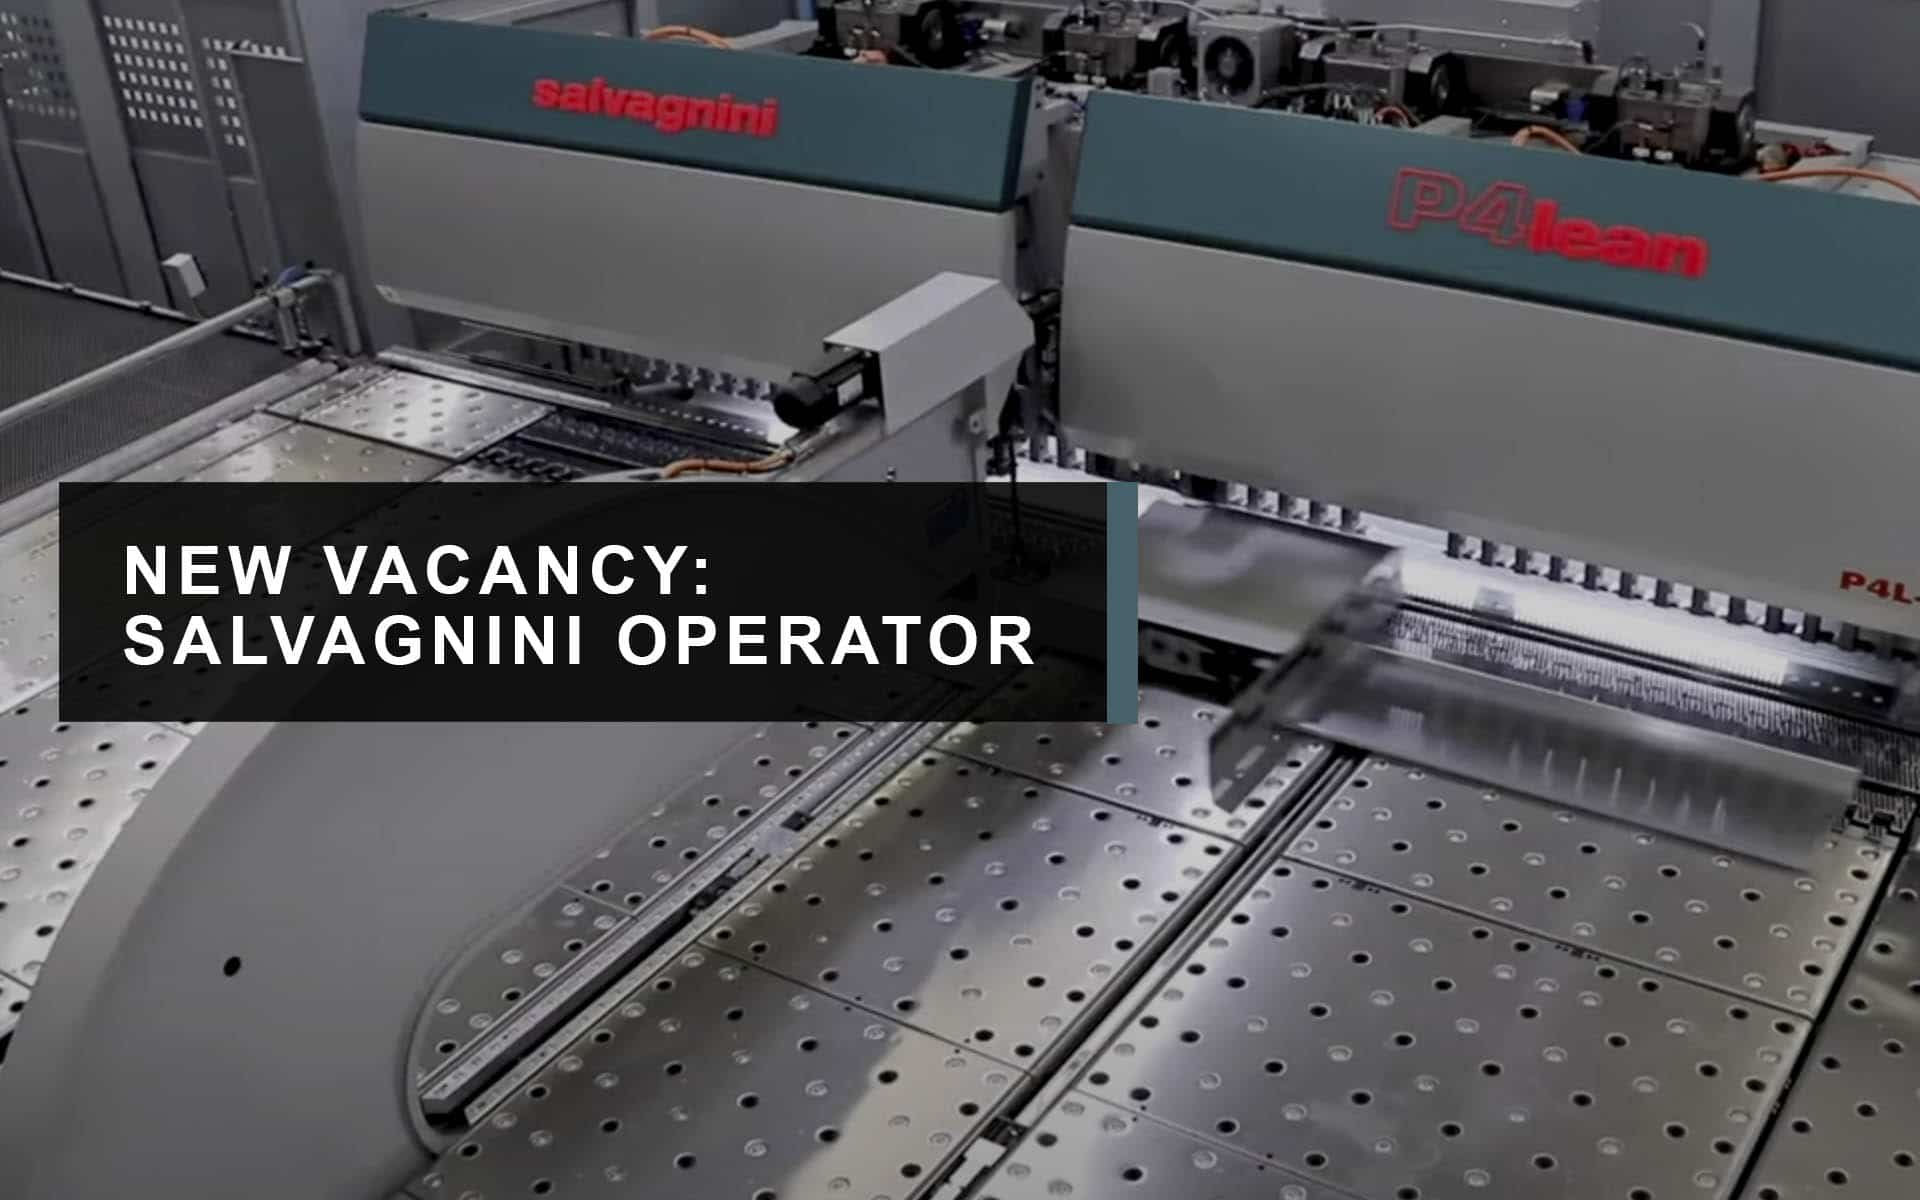 Salvagnini operator vacancy north east